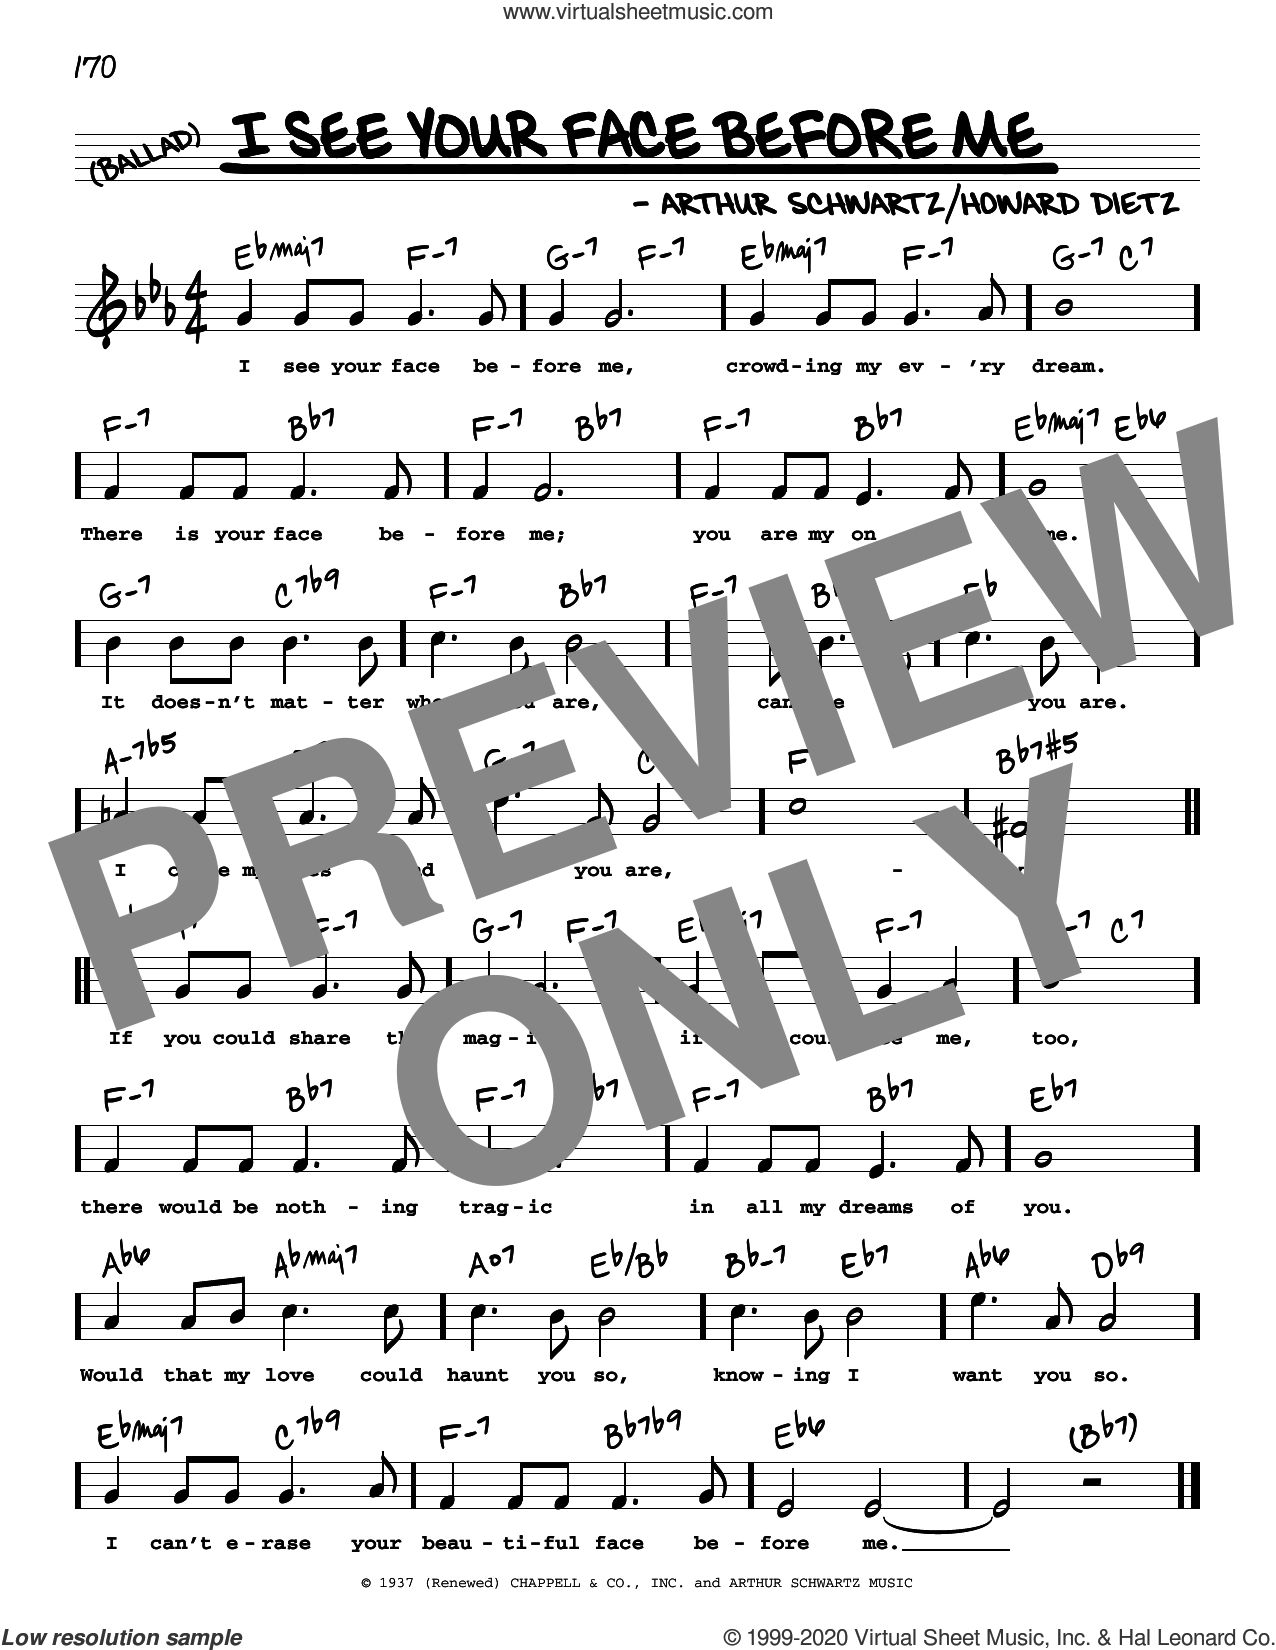 I See Your Face Before Me (High Voice) sheet music for voice and other instruments (real book with lyrics) by Arthur Schwartz and Howard Dietz, intermediate skill level